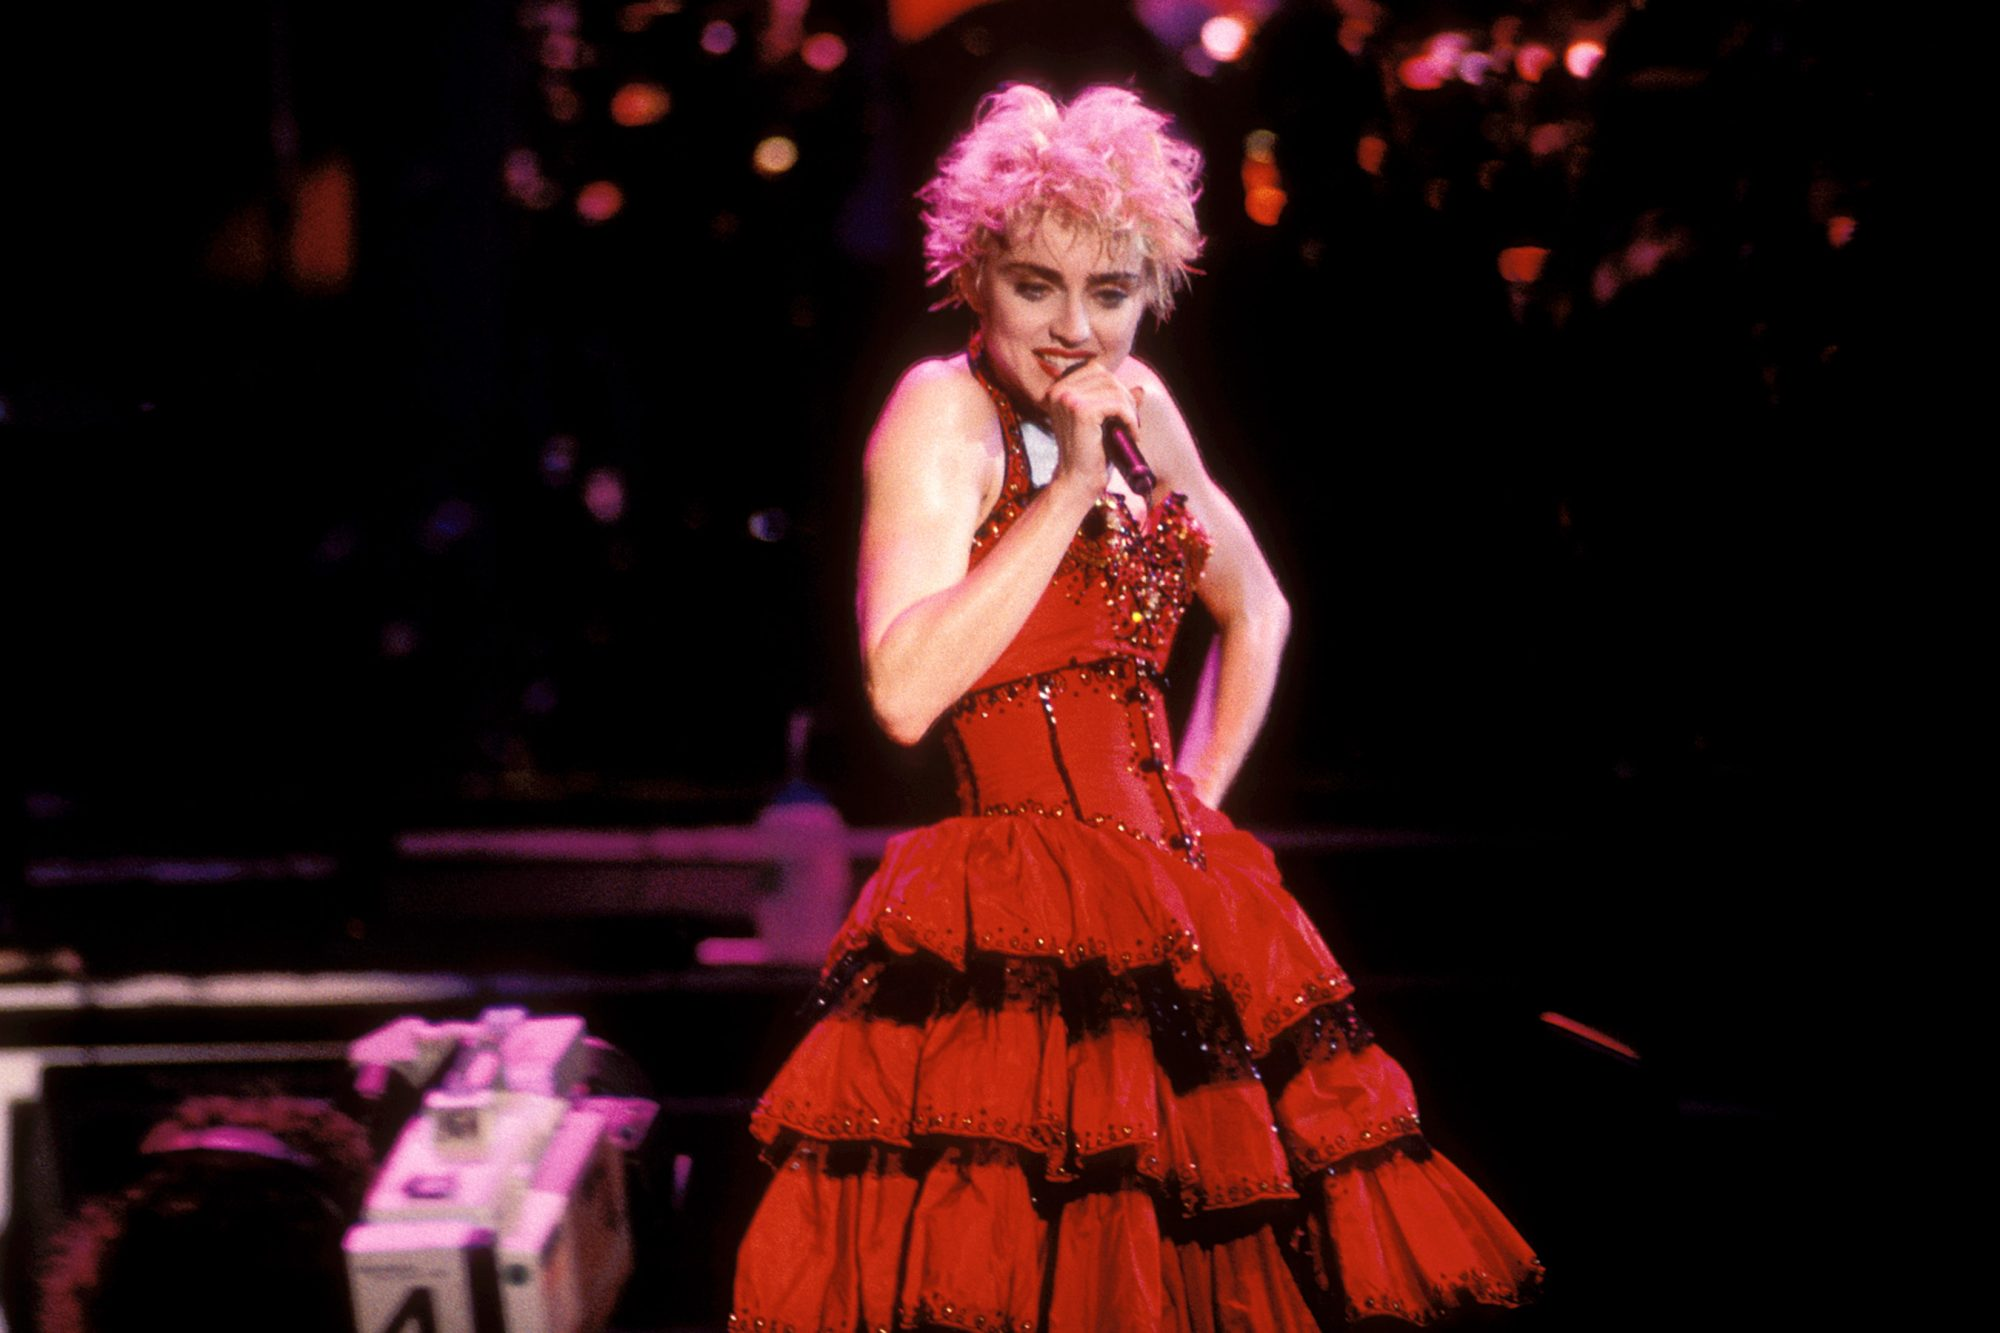 Madonna performing in her 1987 concert tour Madison Square Garden NYC